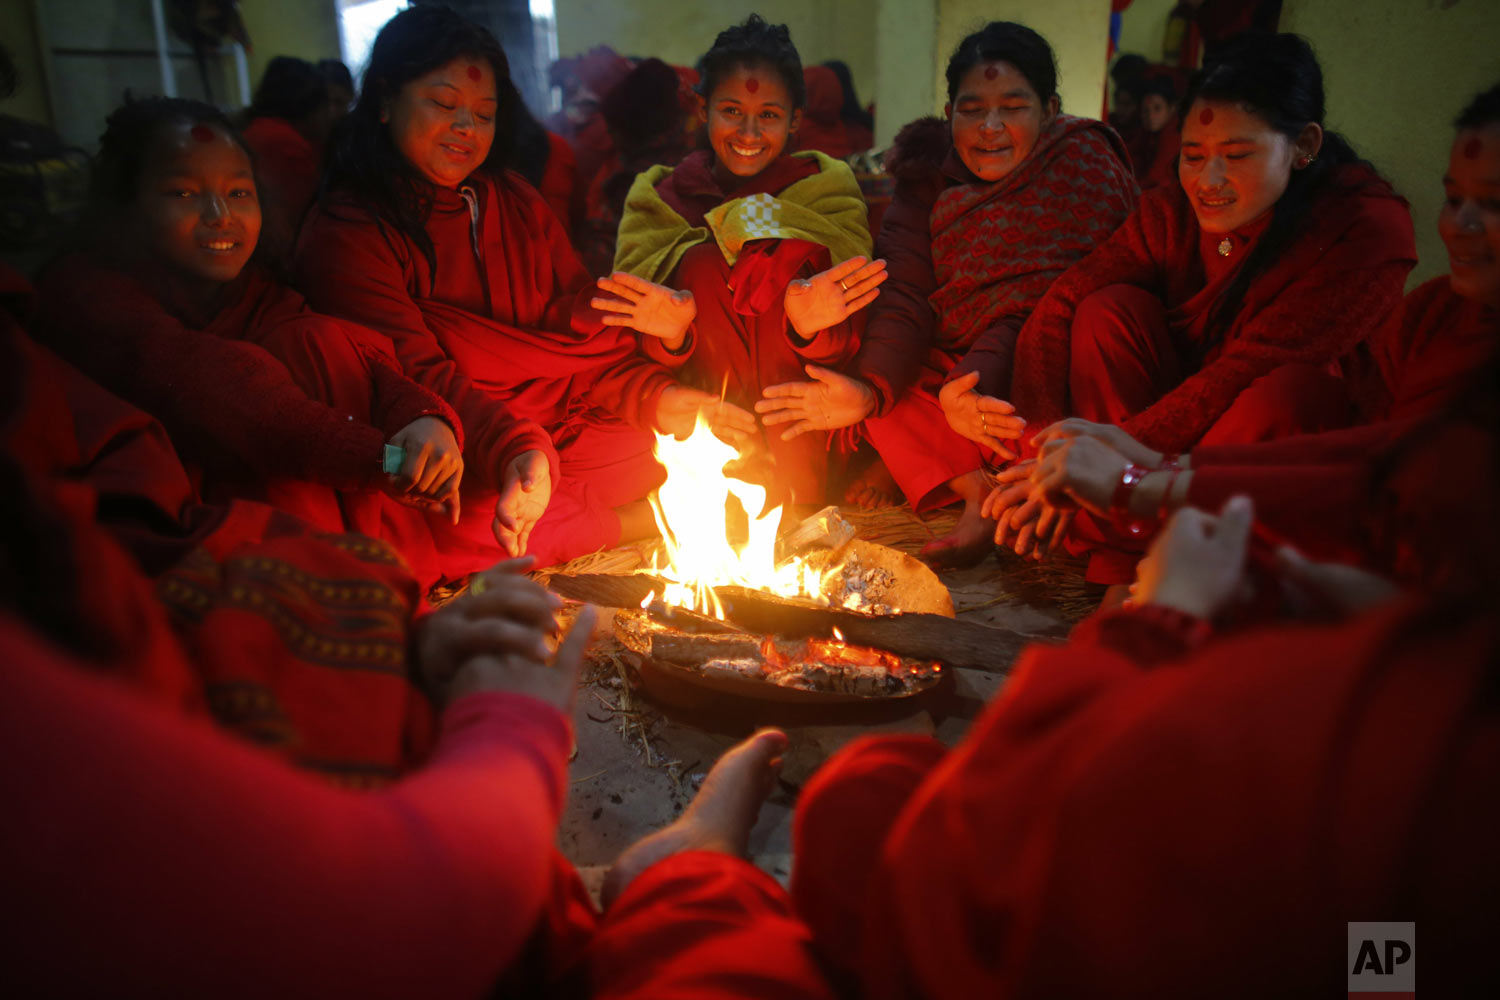 Devotees warm themselves up around a fire after taking a holy dip in the Sali River during Madhav Narayan festival in Sankhu, northeast of Kathmandu, Nepal, on Monday, Jan. 21, 2019. During the festival, worshippers recite holy scriptures dedicated to Hindu goddess Swasthani and Lord Shiva. Unmarried women pray for a good husband while those married pray for the longevity of their husbands by observing a month-long fast. (AP Photo/Niranjan Shrestha)